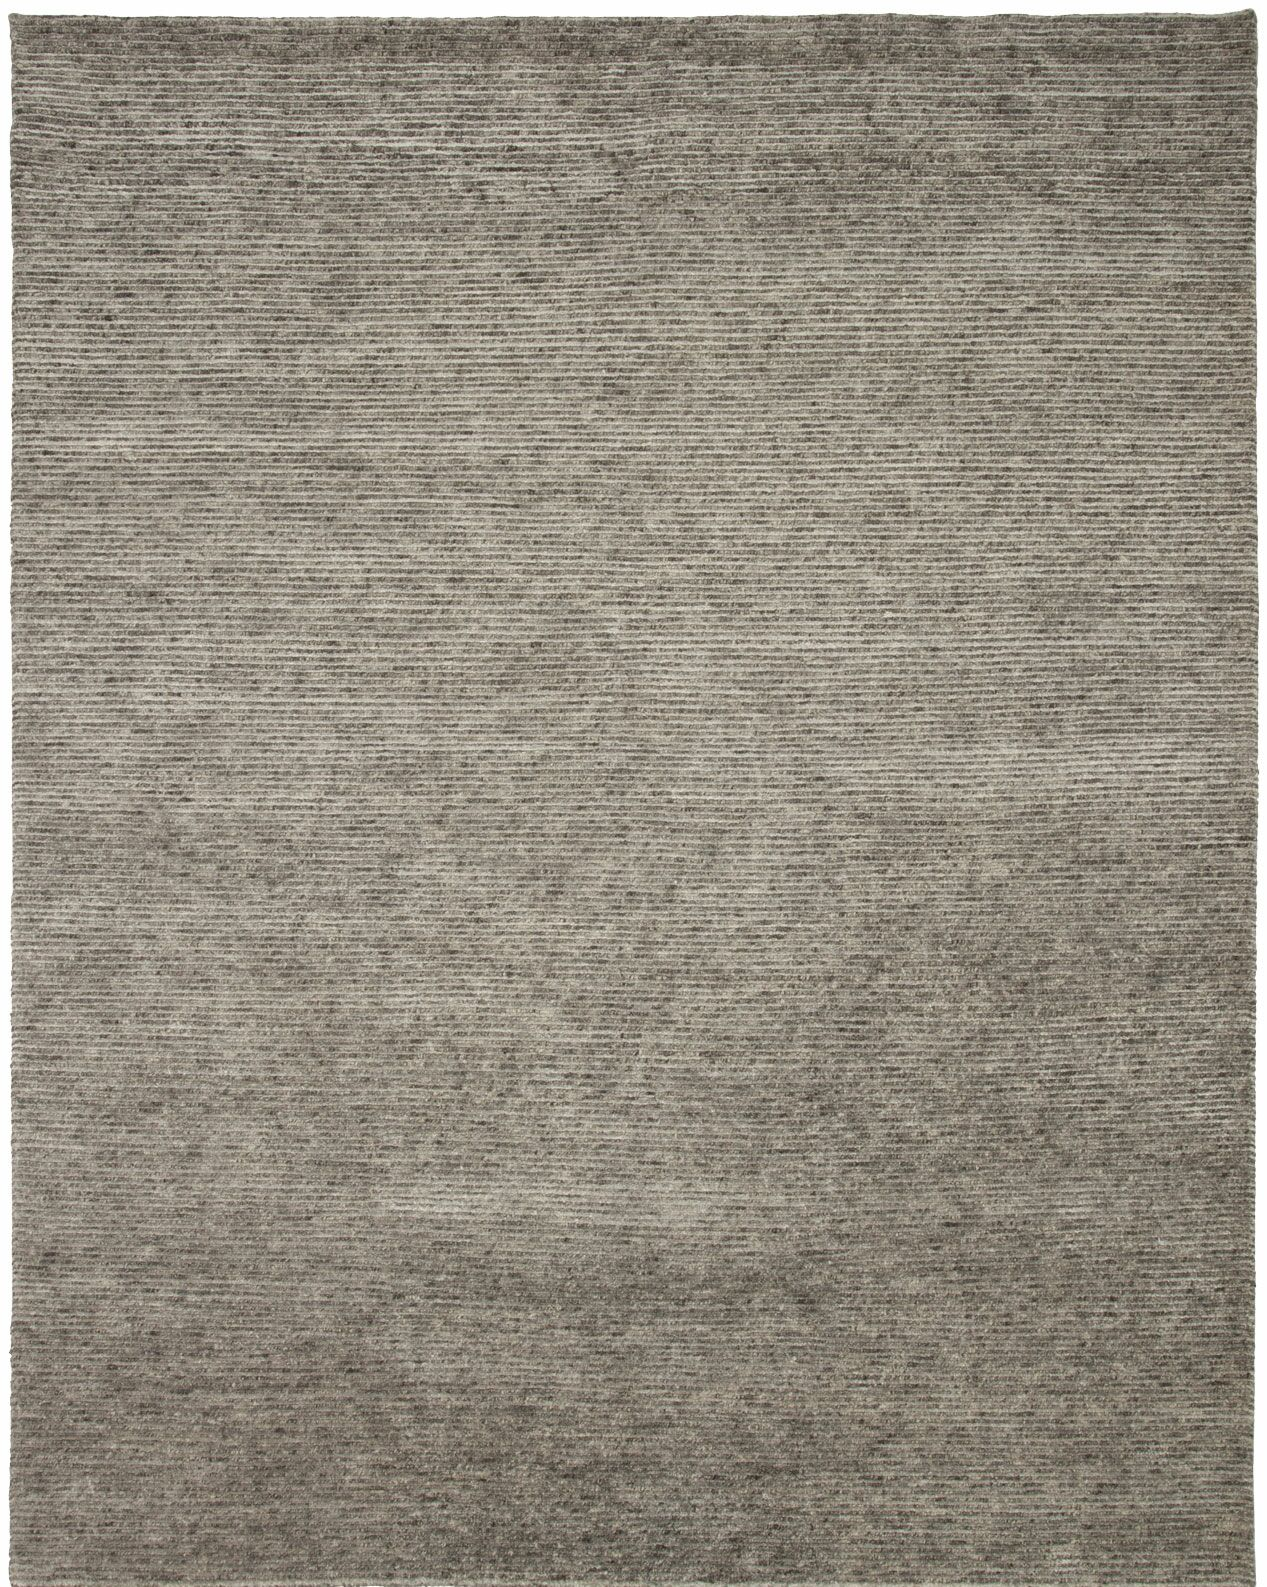 Horizon Hand-Knotted Gray Area Rug Rug Size: 8' x 10'